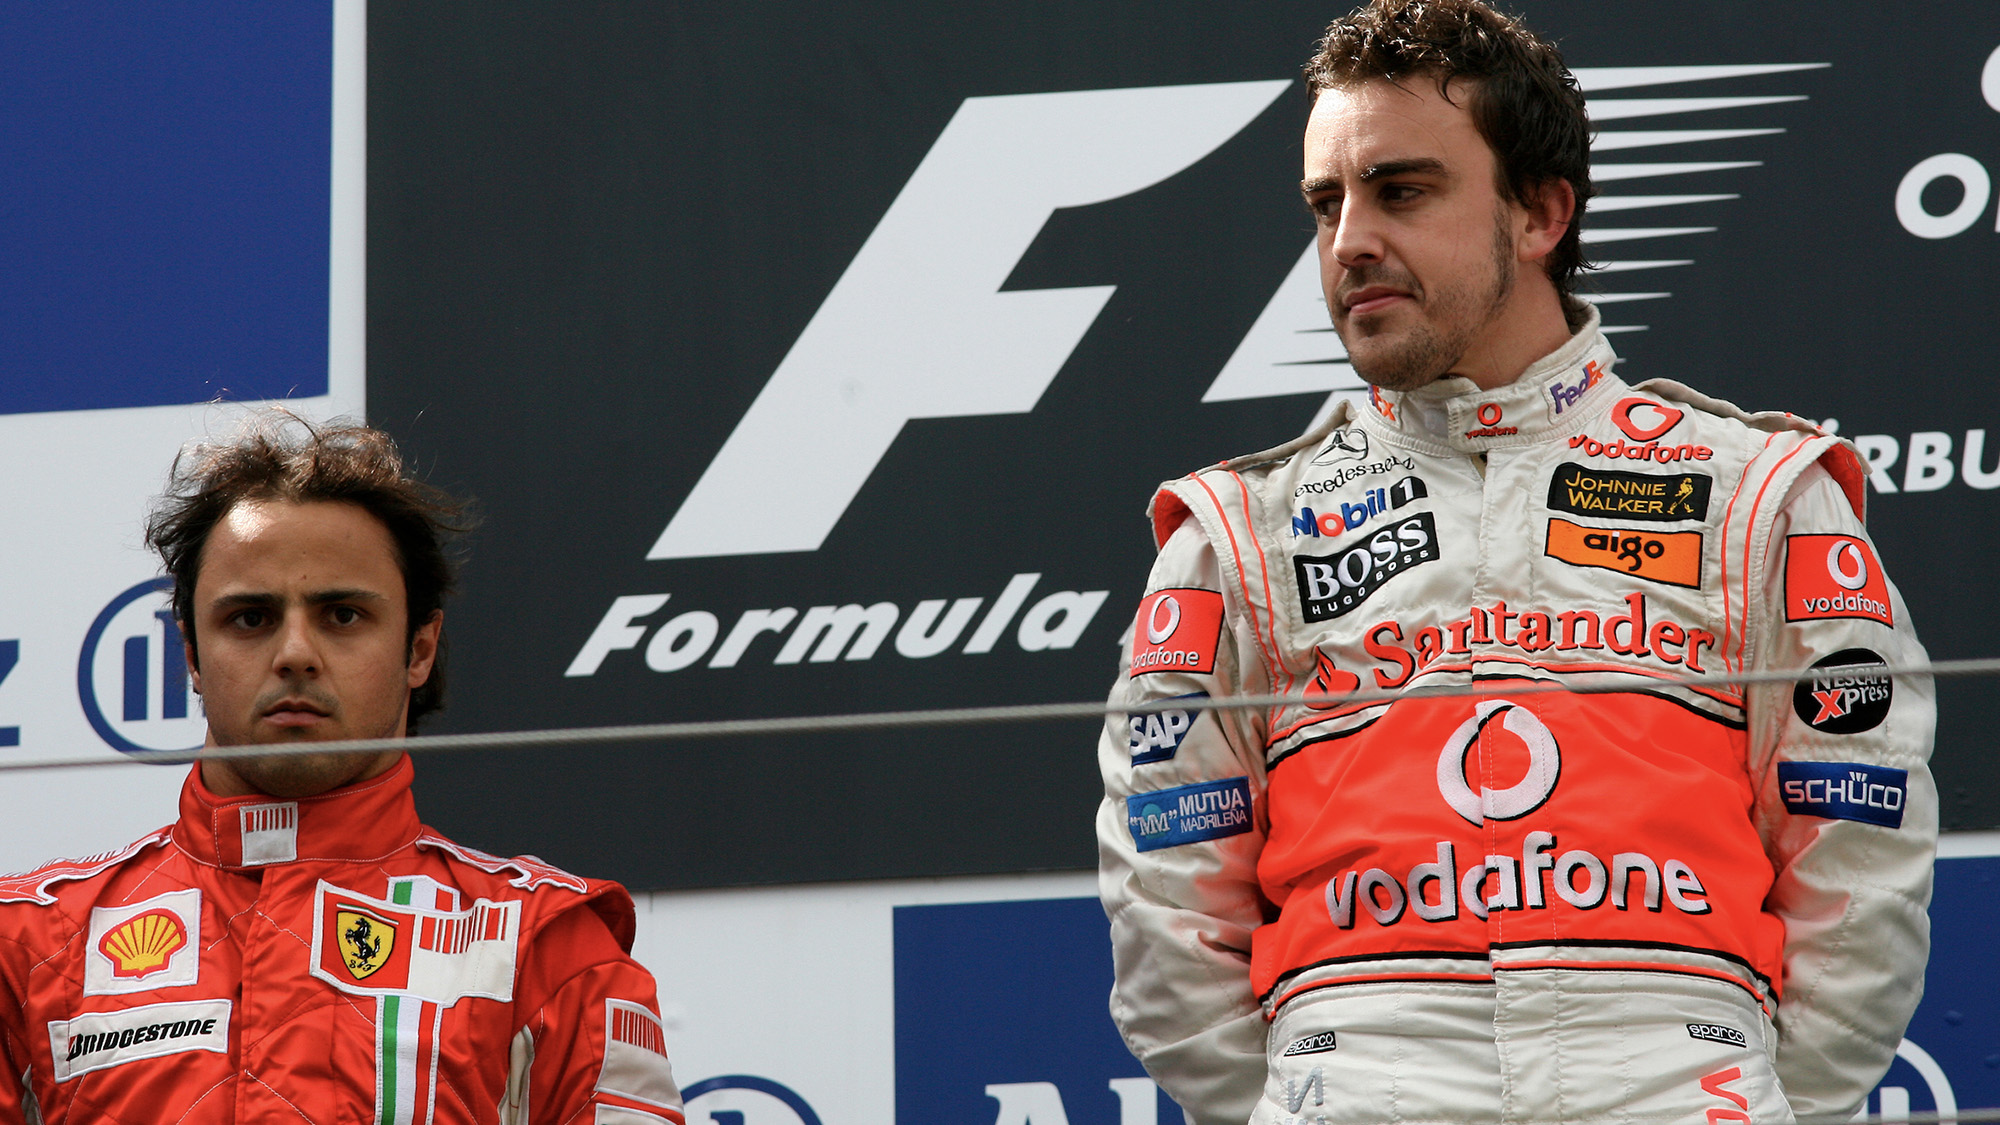 Fernando Alonso and Felipe Massa on the podium at the 2007 GErman Grand Prix at the Nurburgring